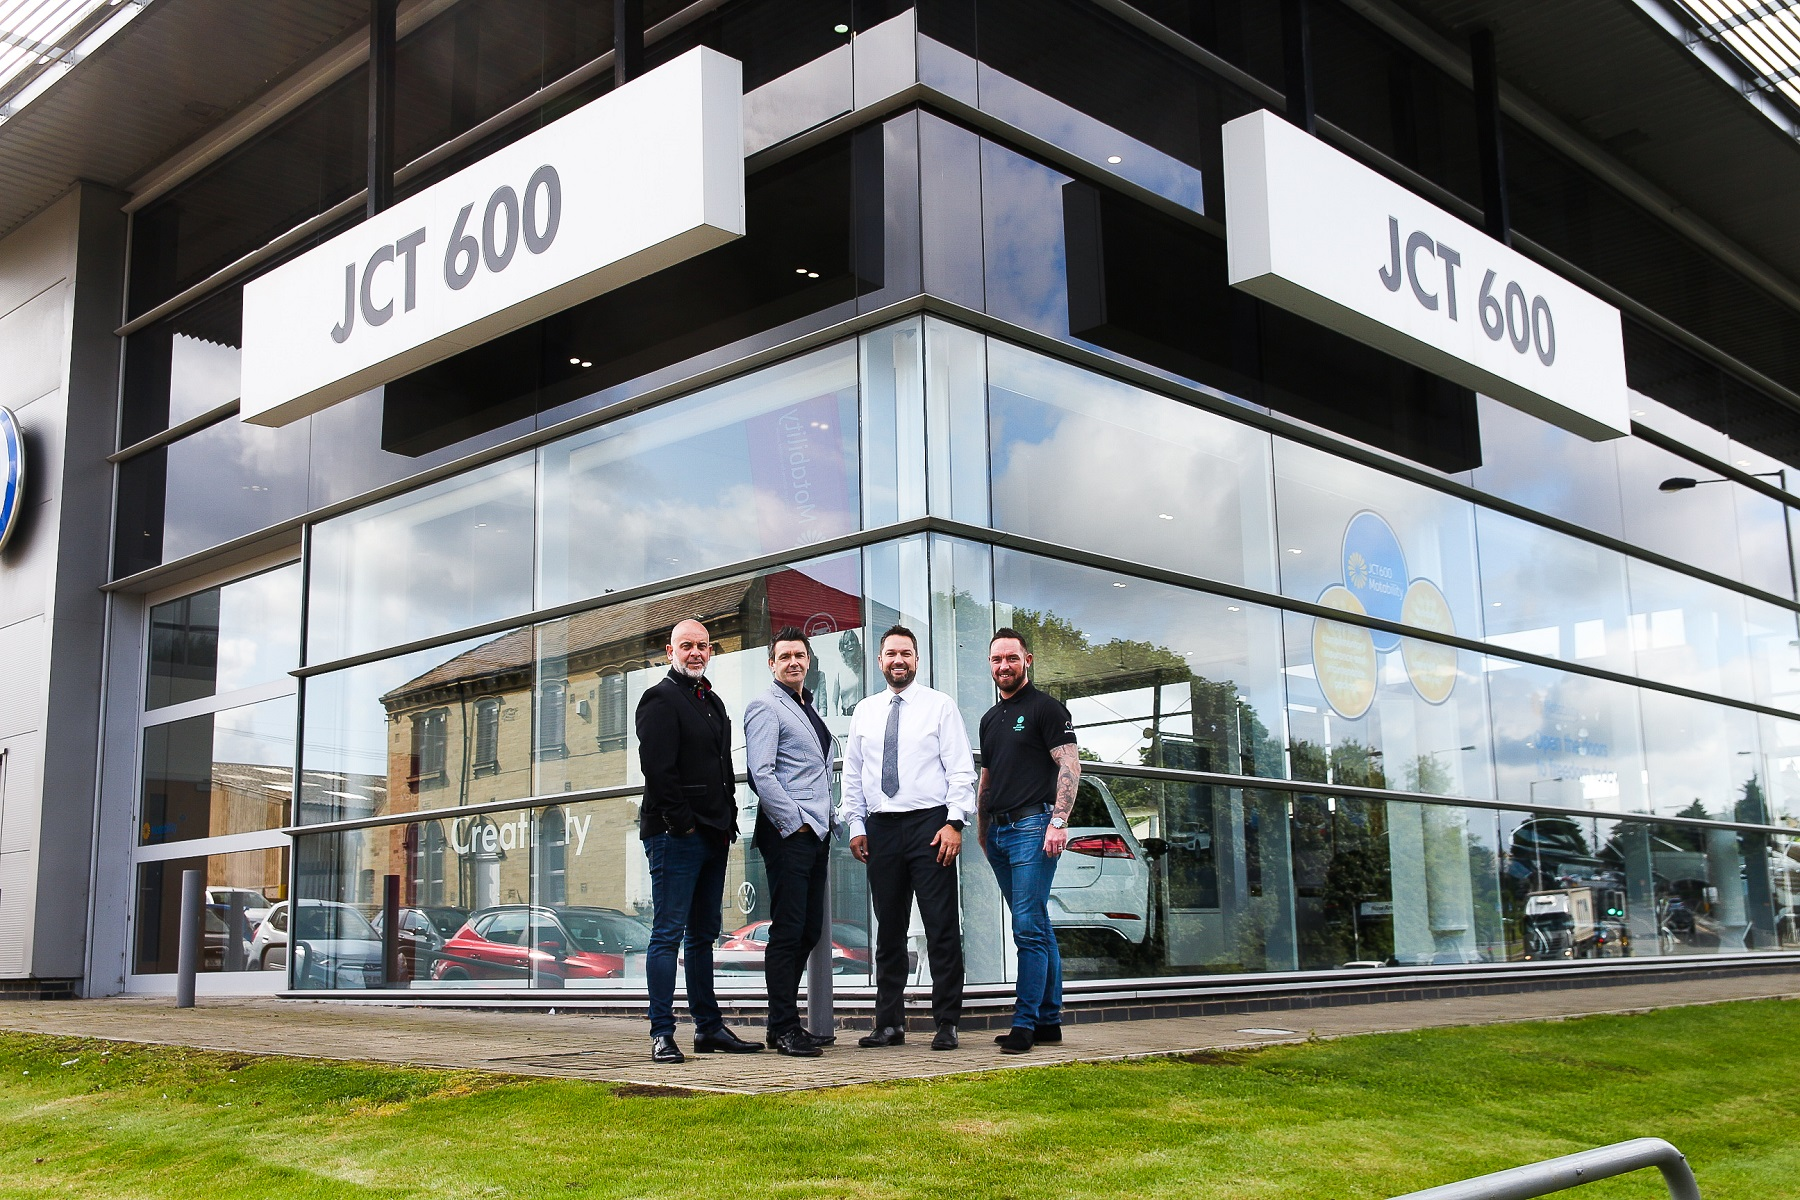 JCT600 invests £1m in cloud-based communications tech